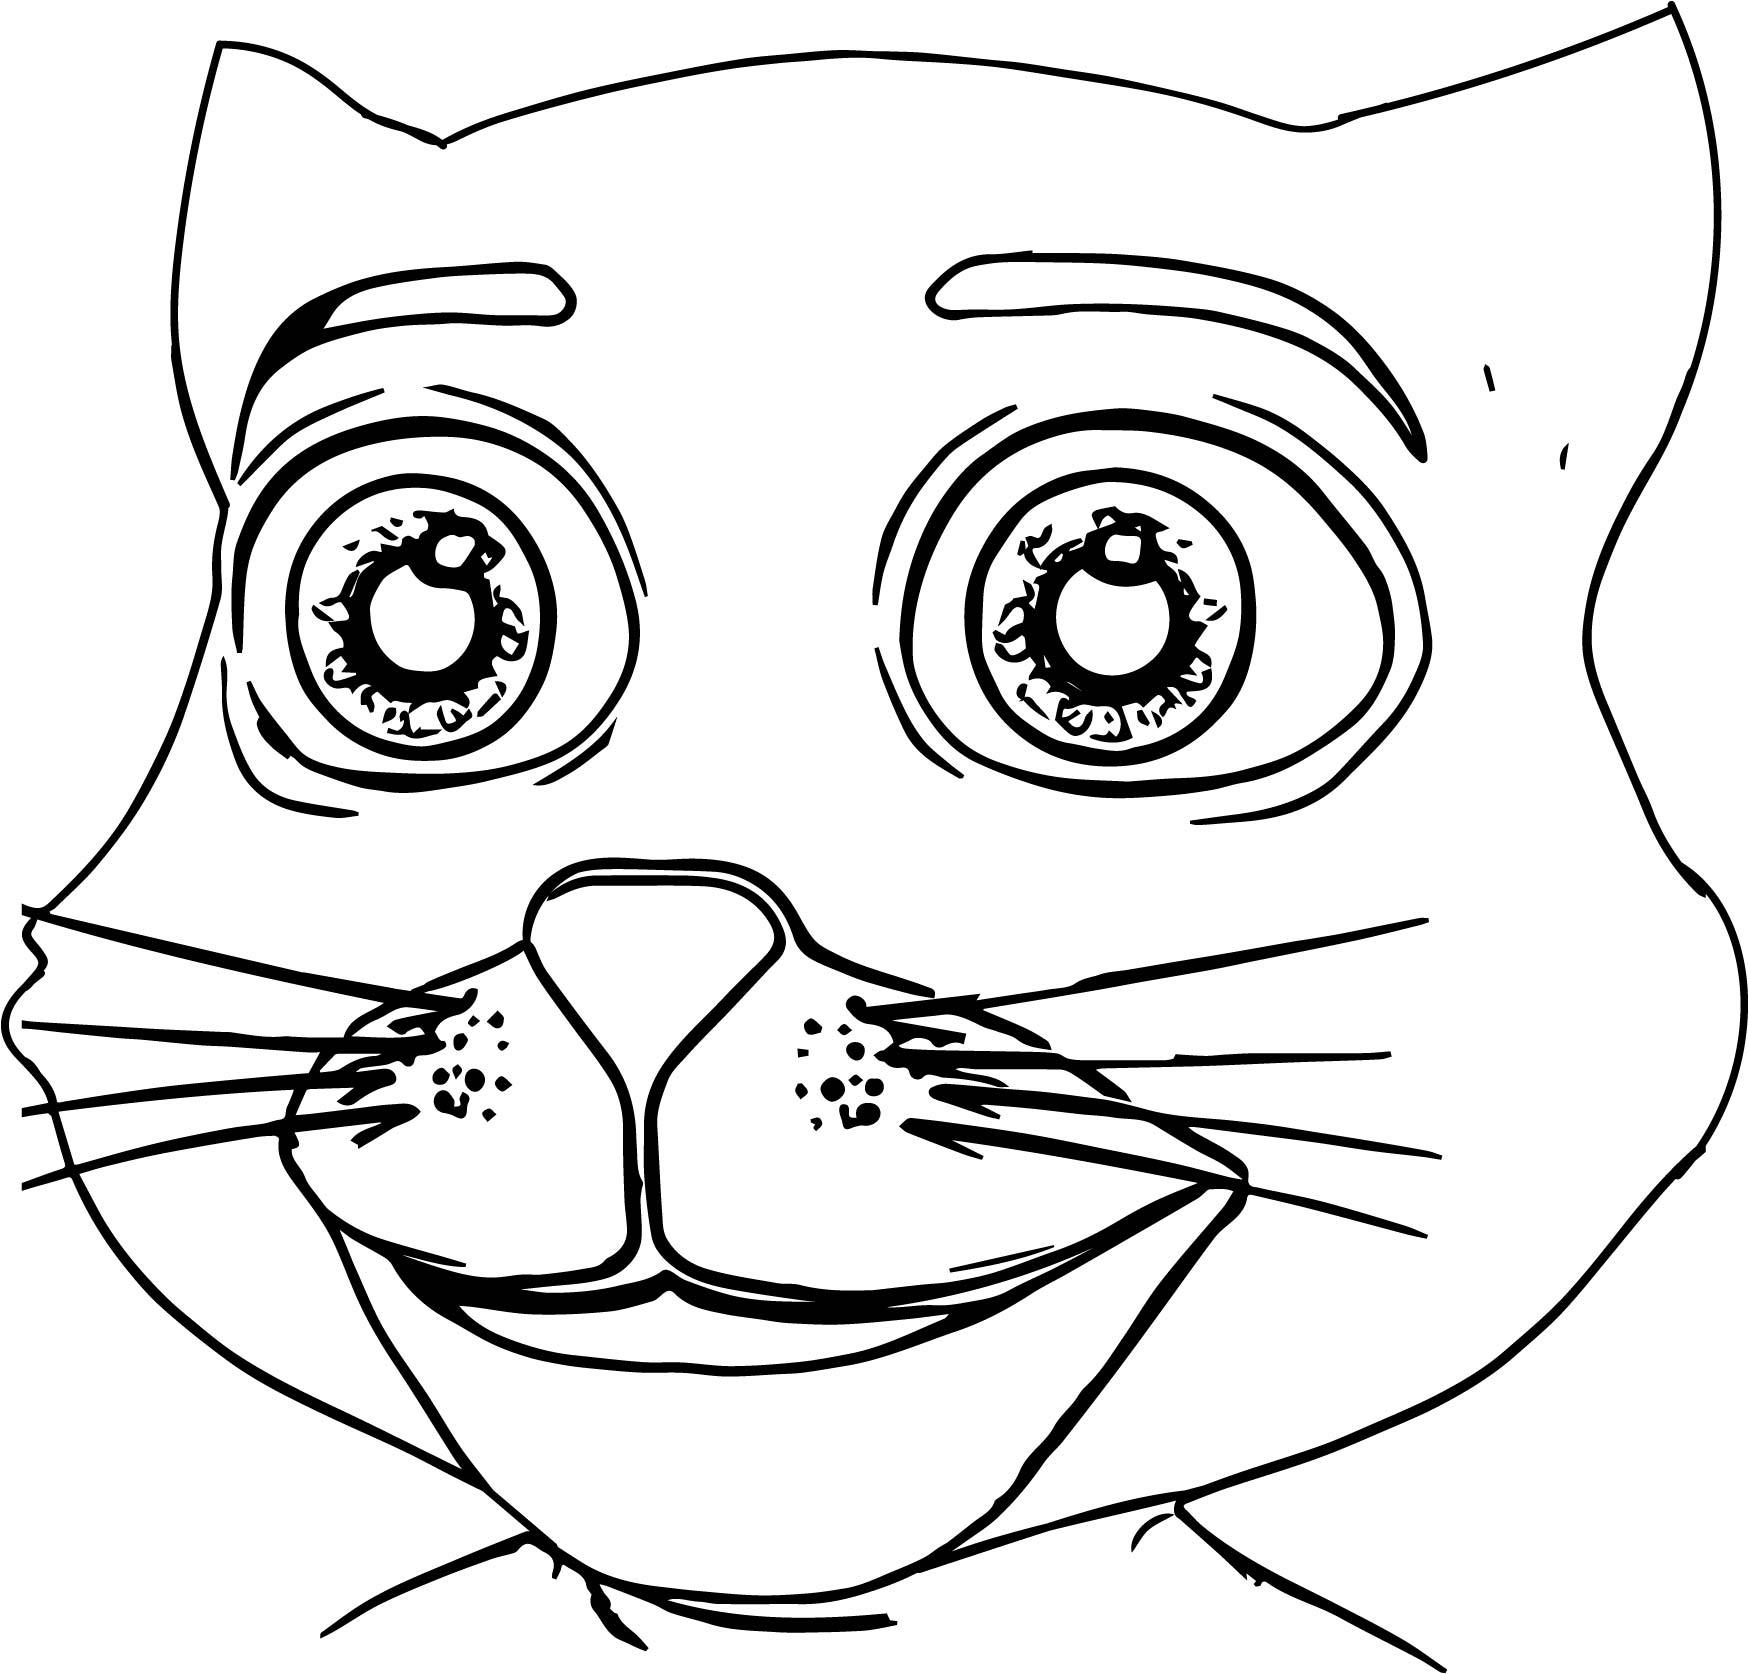 1749x1674 Appealing Draw Coloring For Your Line Drawings With Pict Of Cat